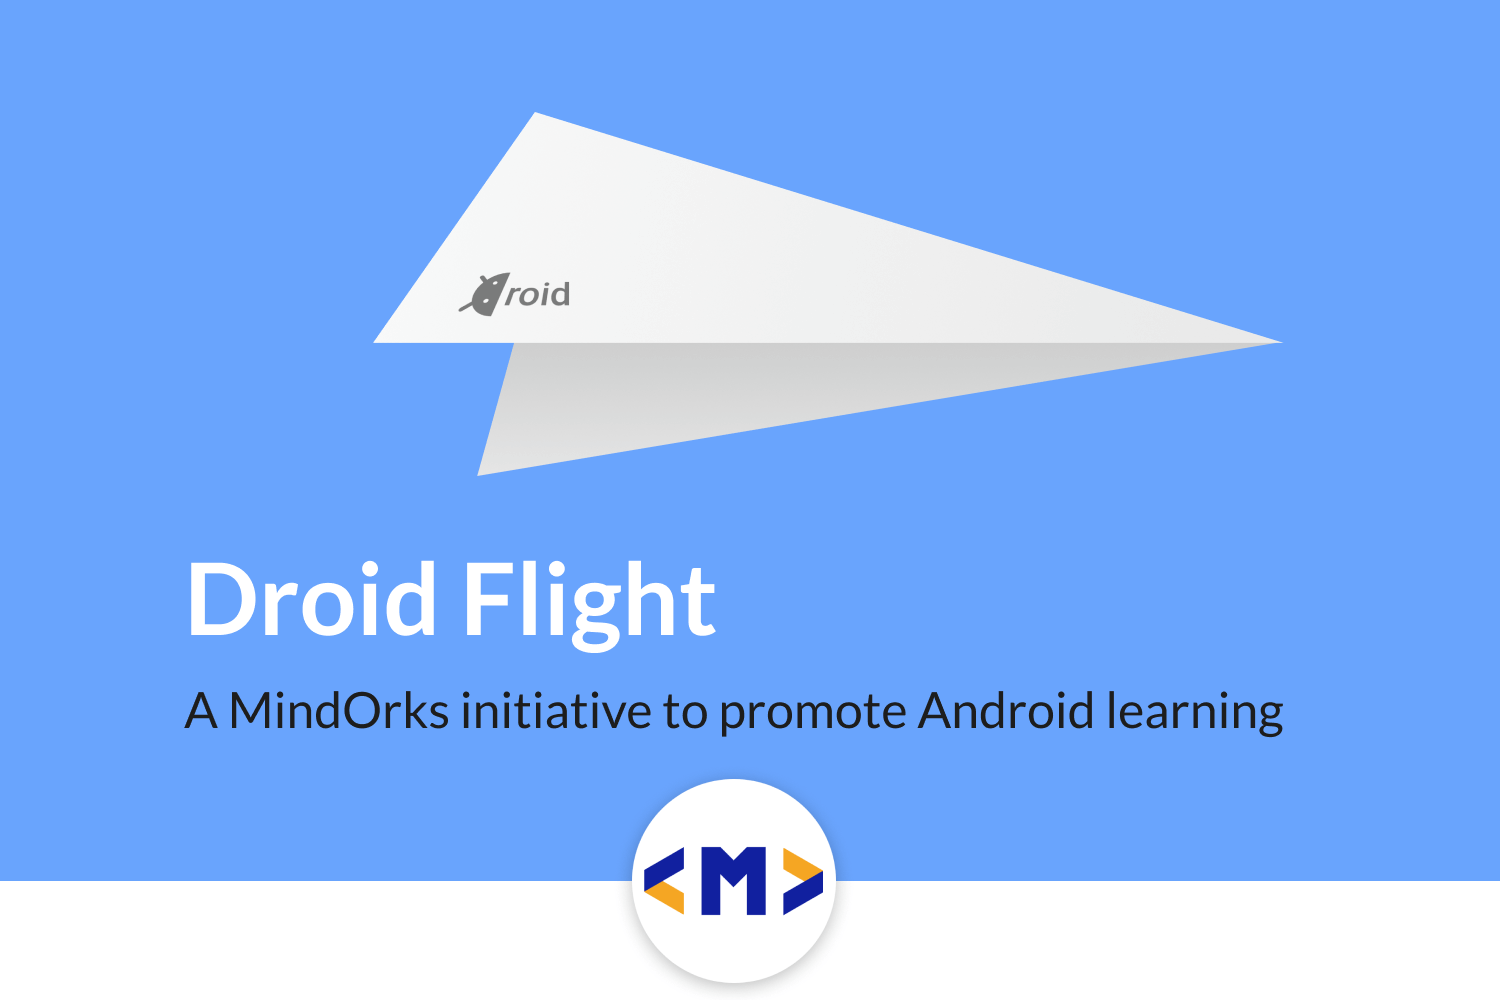 Droid Flight: A MindOrks initiative to promote Android Learning